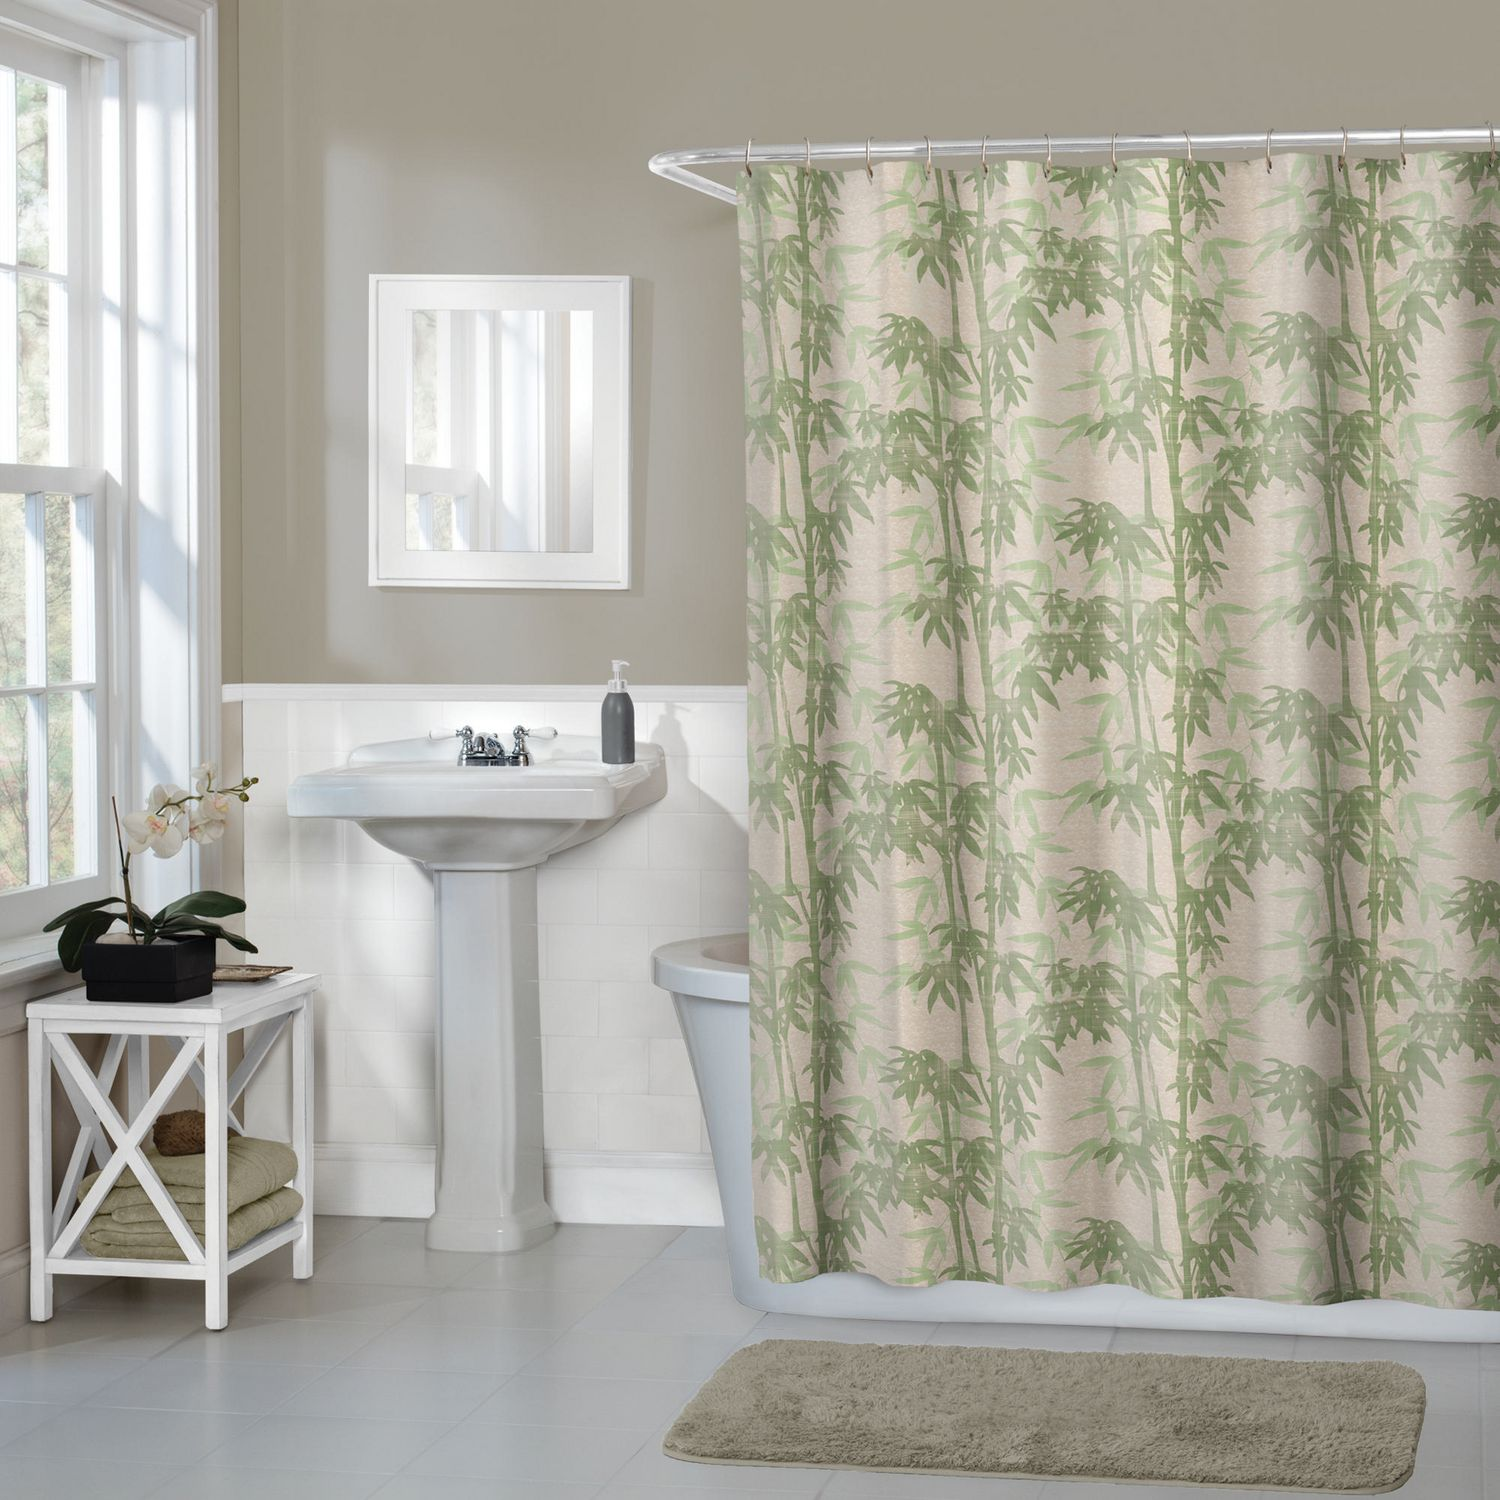 Hometrends Home Trends Bamboo Floral Fabric Shower Curtain